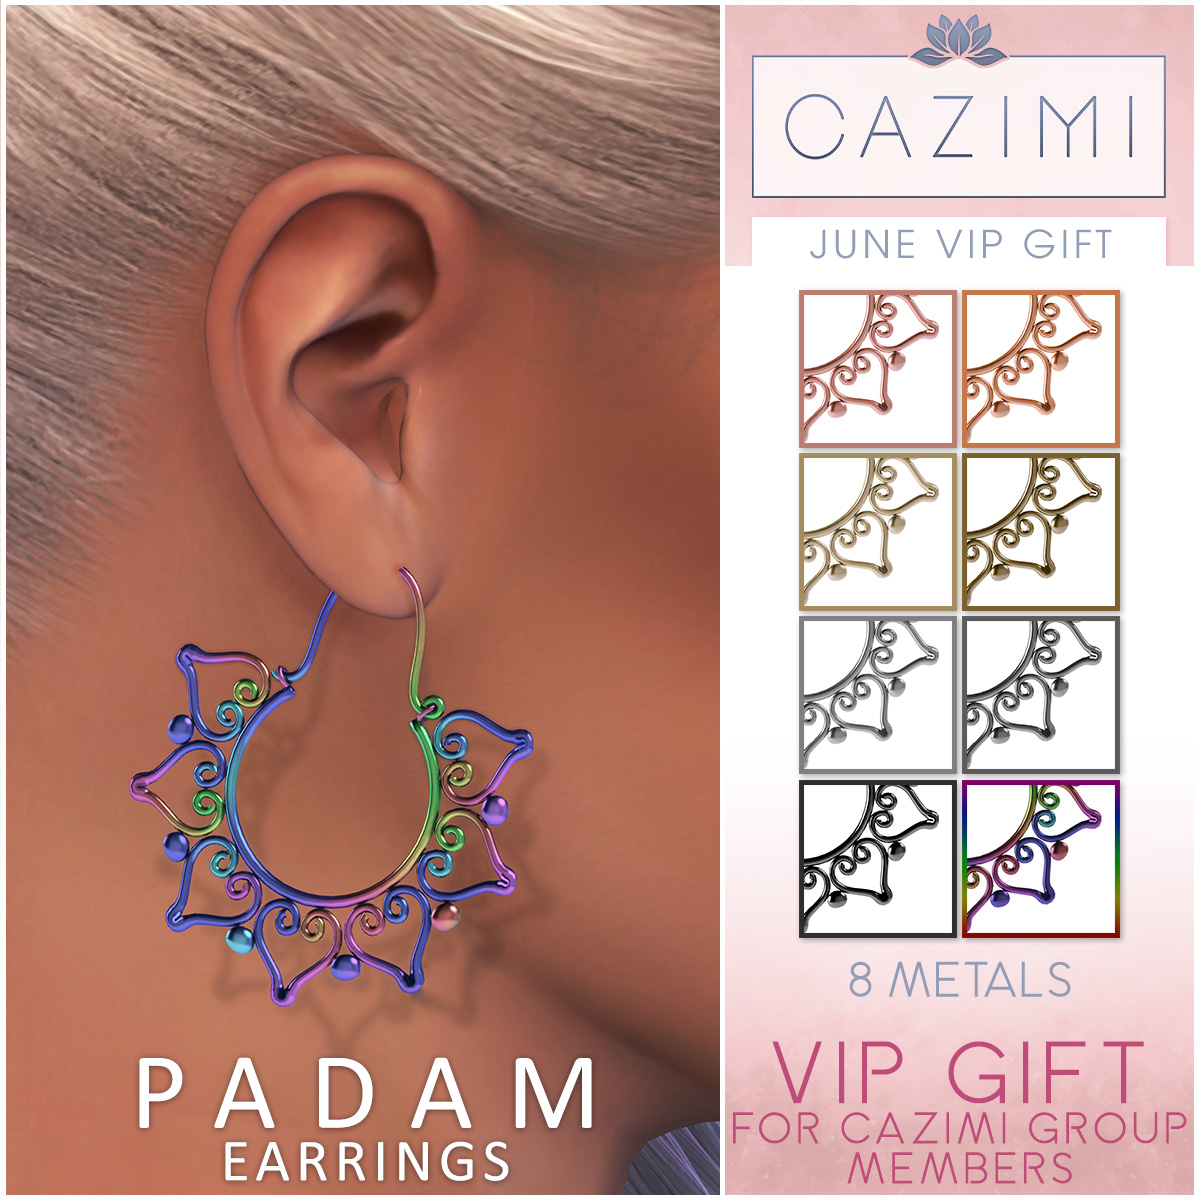 PadamEarrings_Ad_1x1